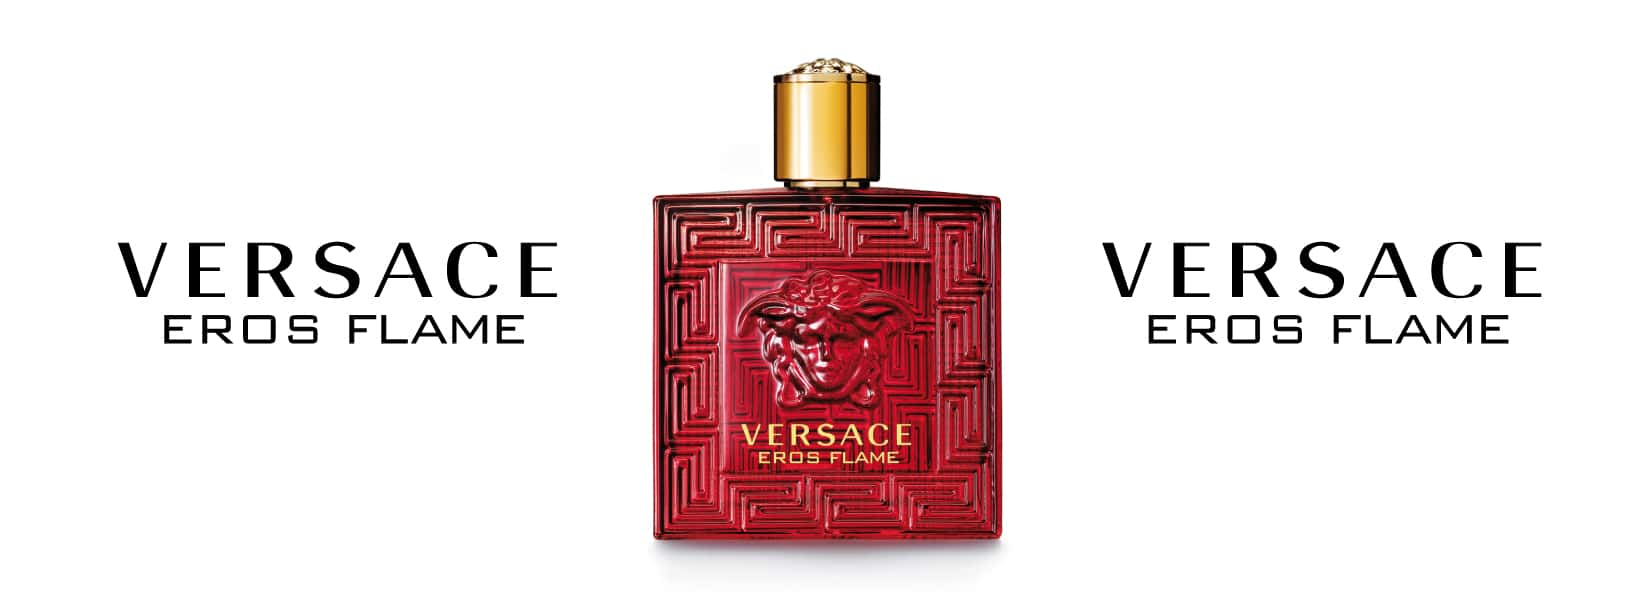 Versace Facebook Competition - Franks